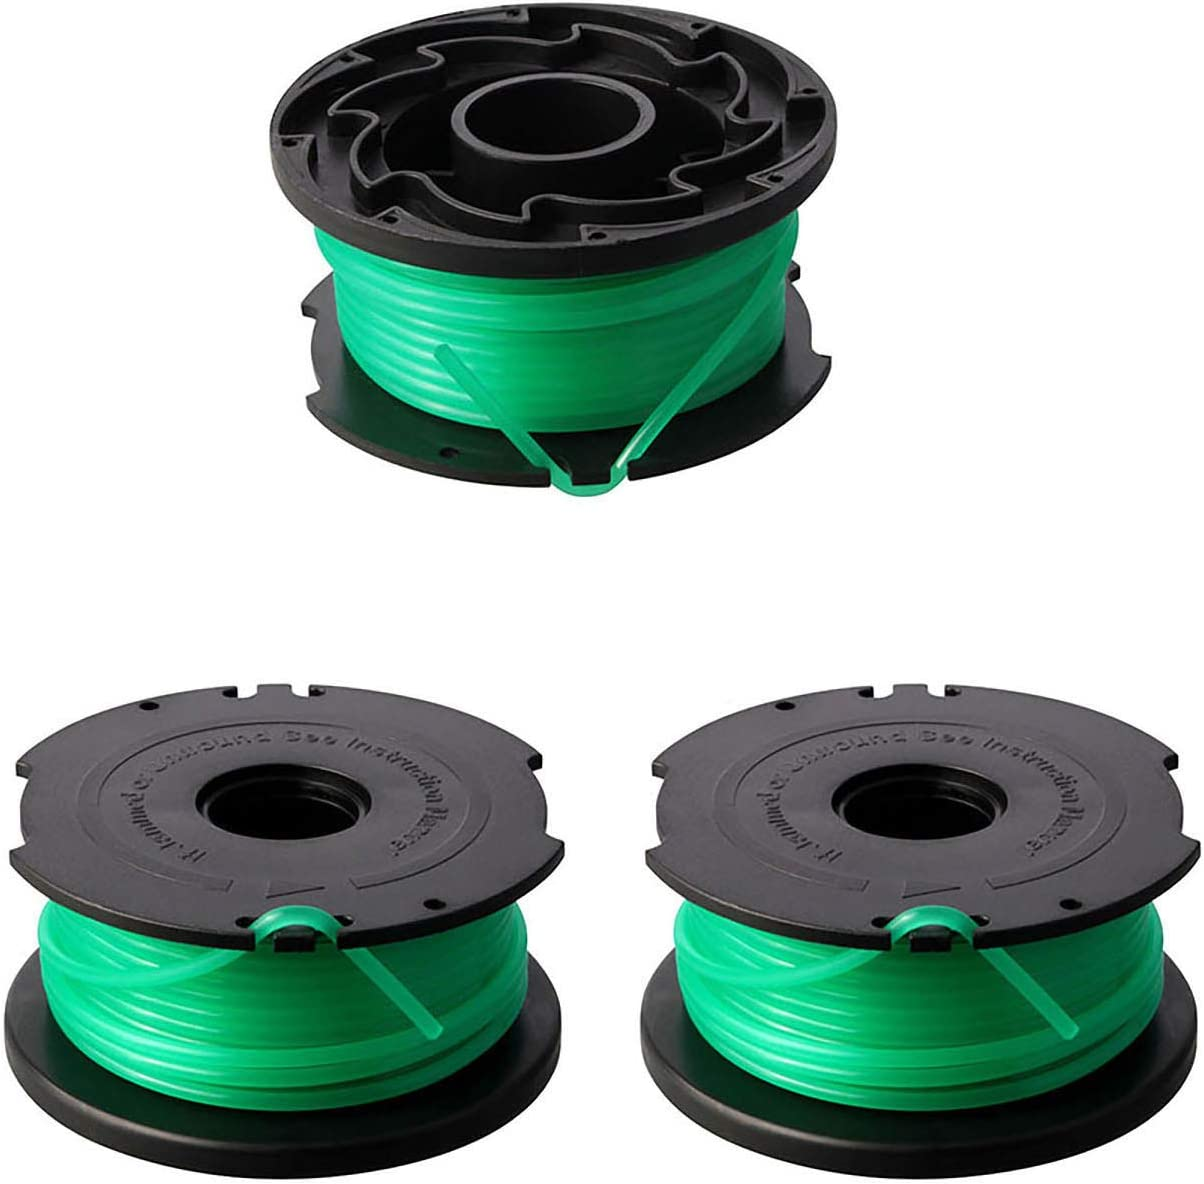 "Thten Line String Trimmer Replacement Spool Fits for Black and Decker GH3000, GH3000R, LST540, LST540B, 20ft 0.08"" Autofeed Replacement Spools Compatible with Black Decker SF- 080 (3 Packs)"